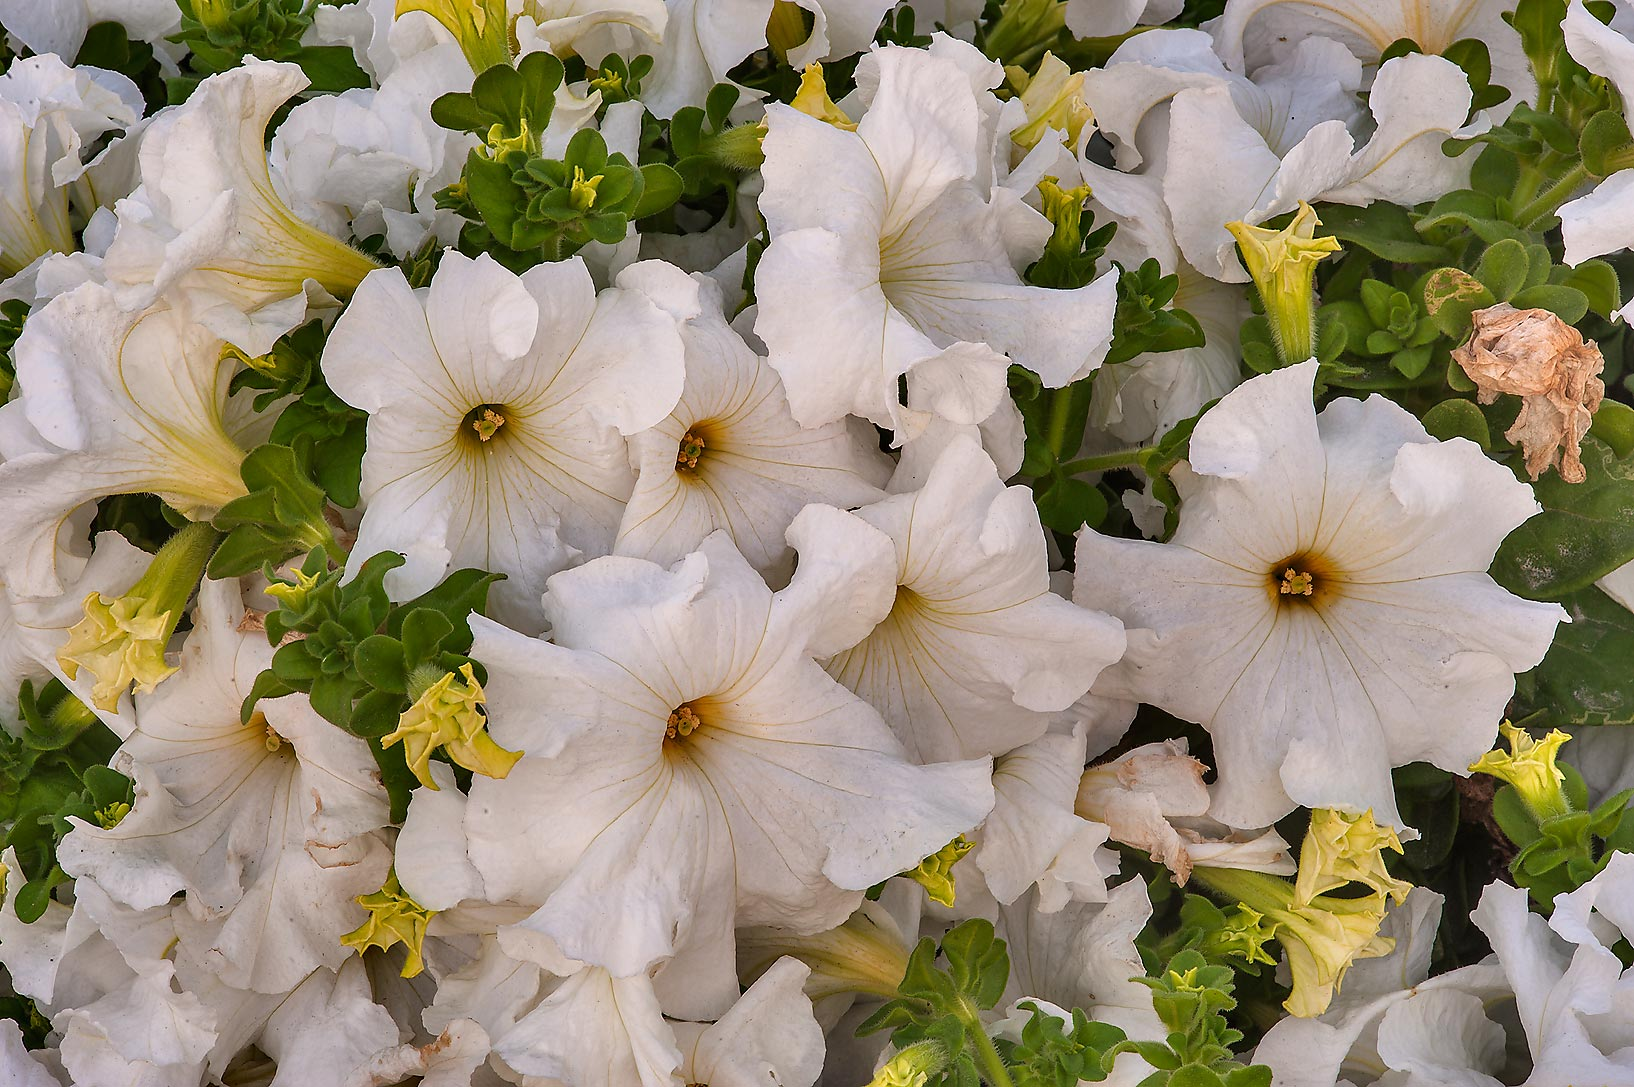 Close up of white petunia flowers Corniche Promenade. Doha, Qatar